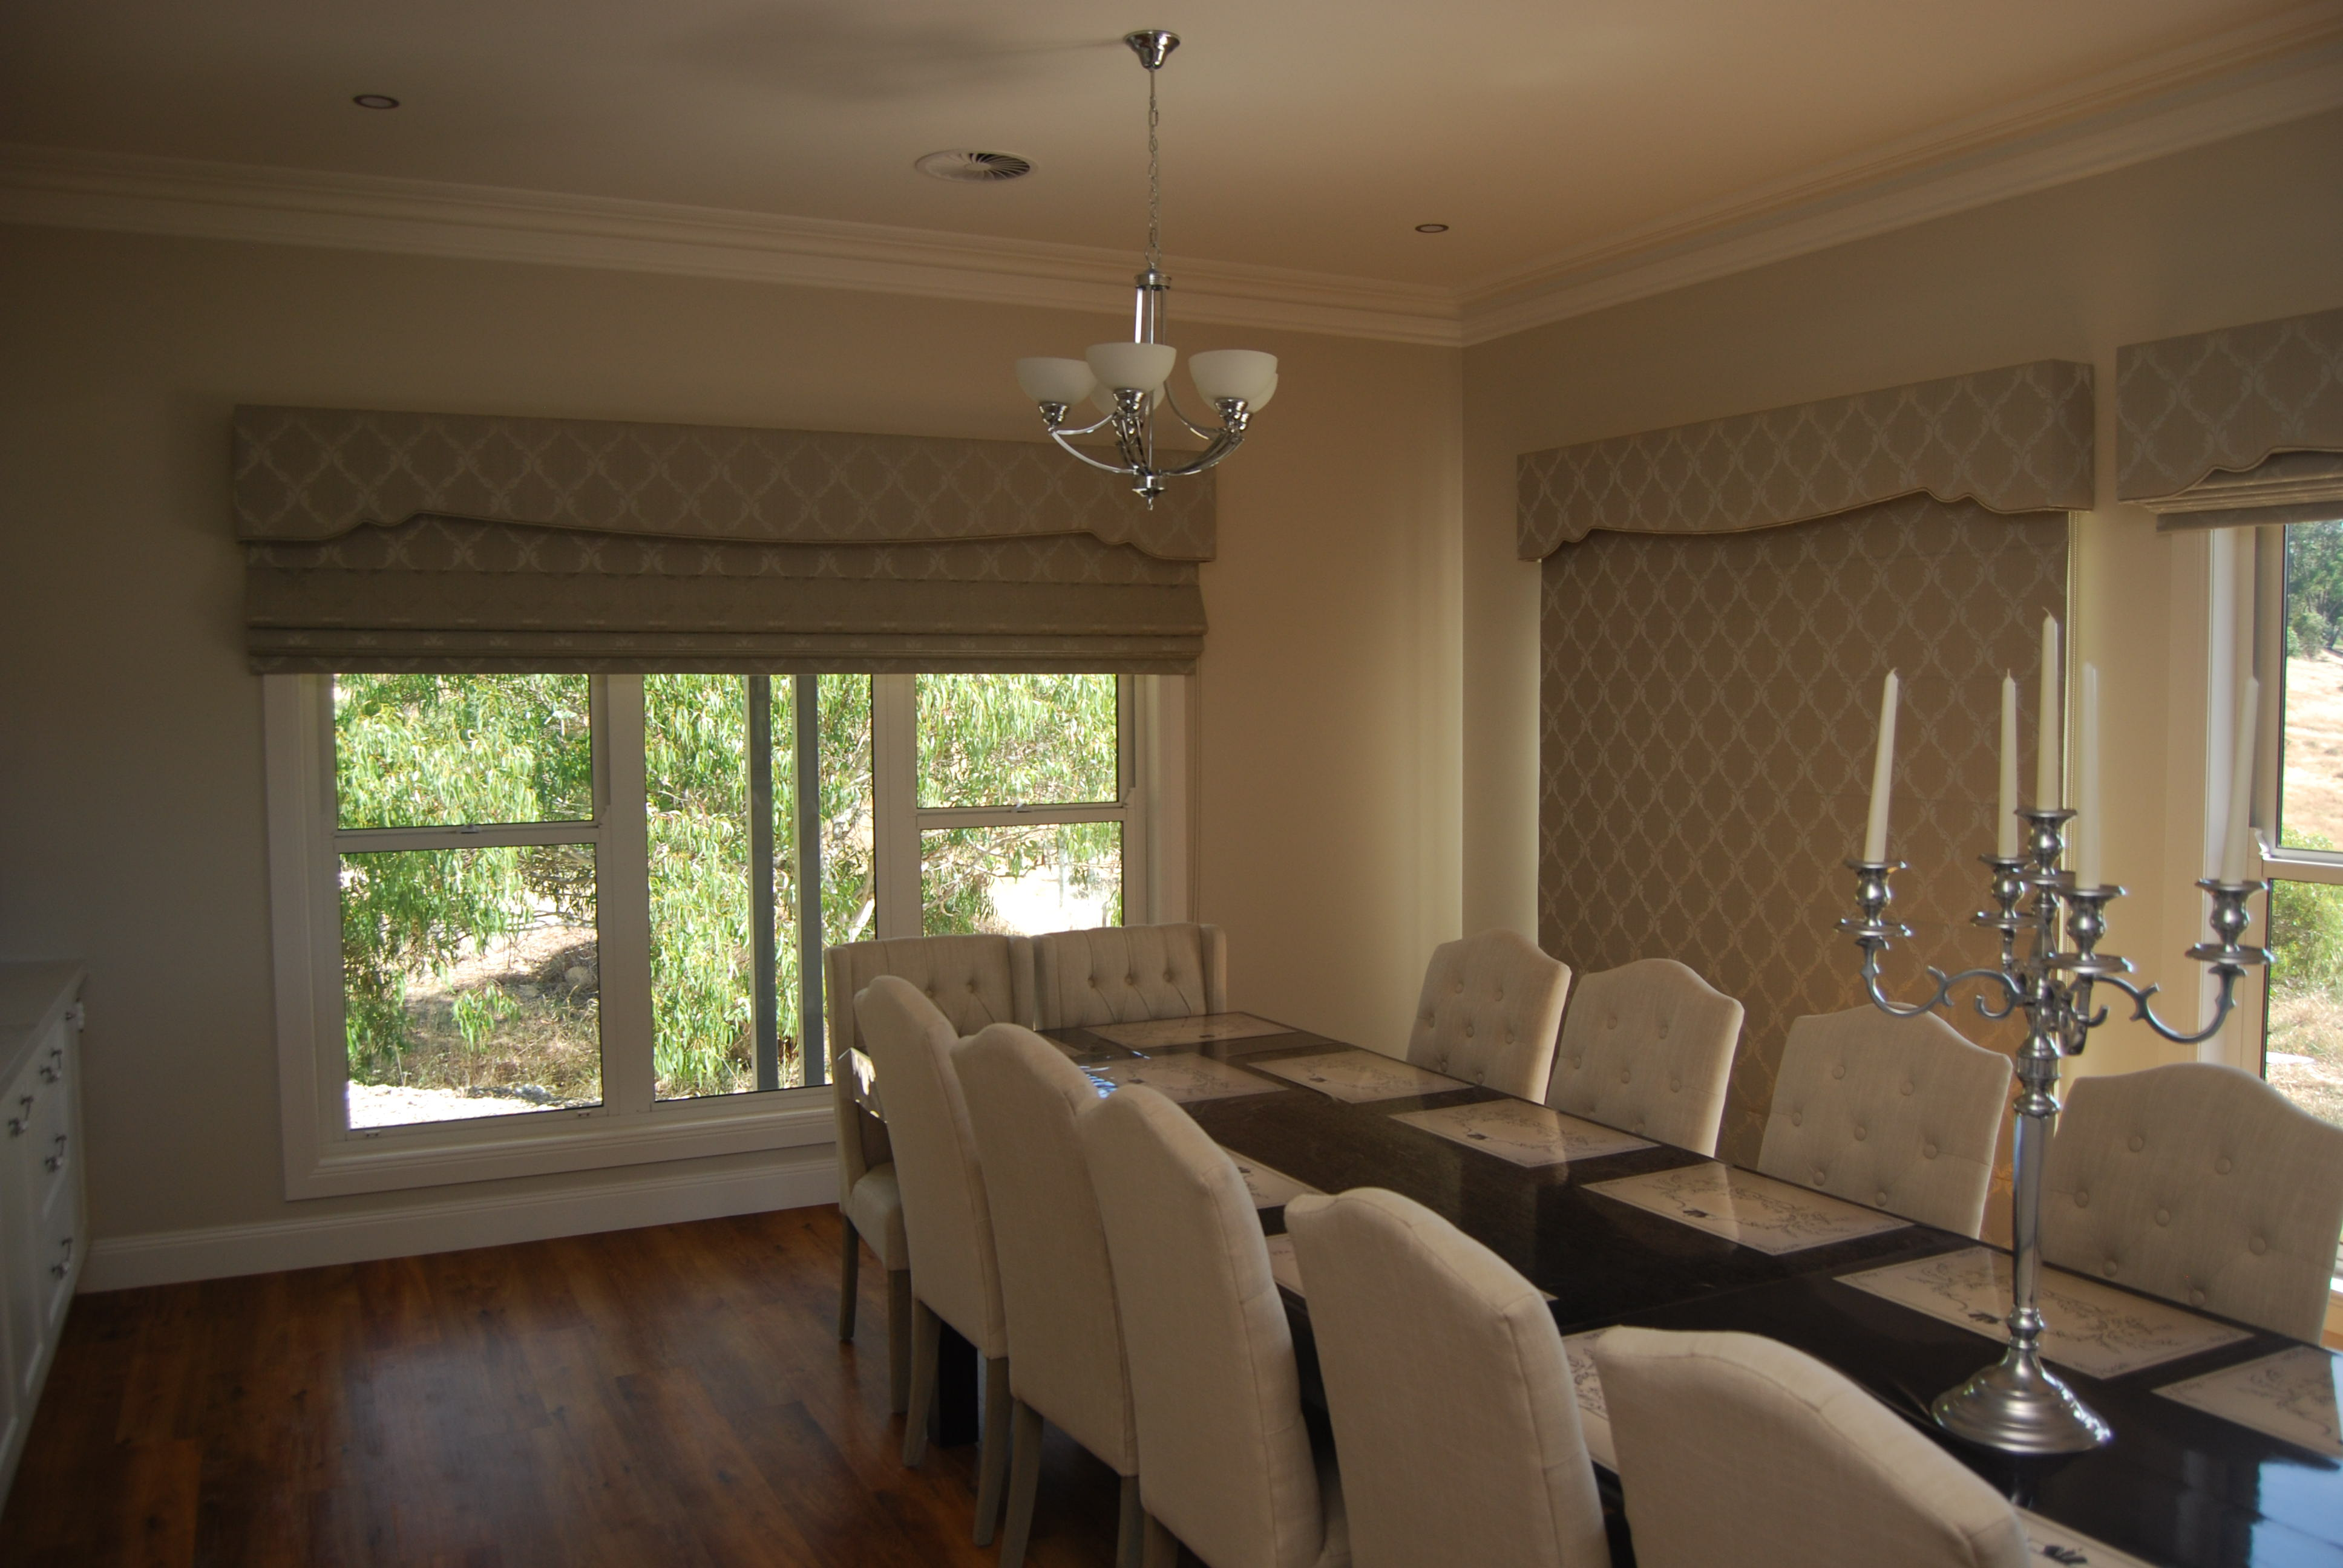 Soft Roman Blinds with Pelmets in Dining Room.JPG